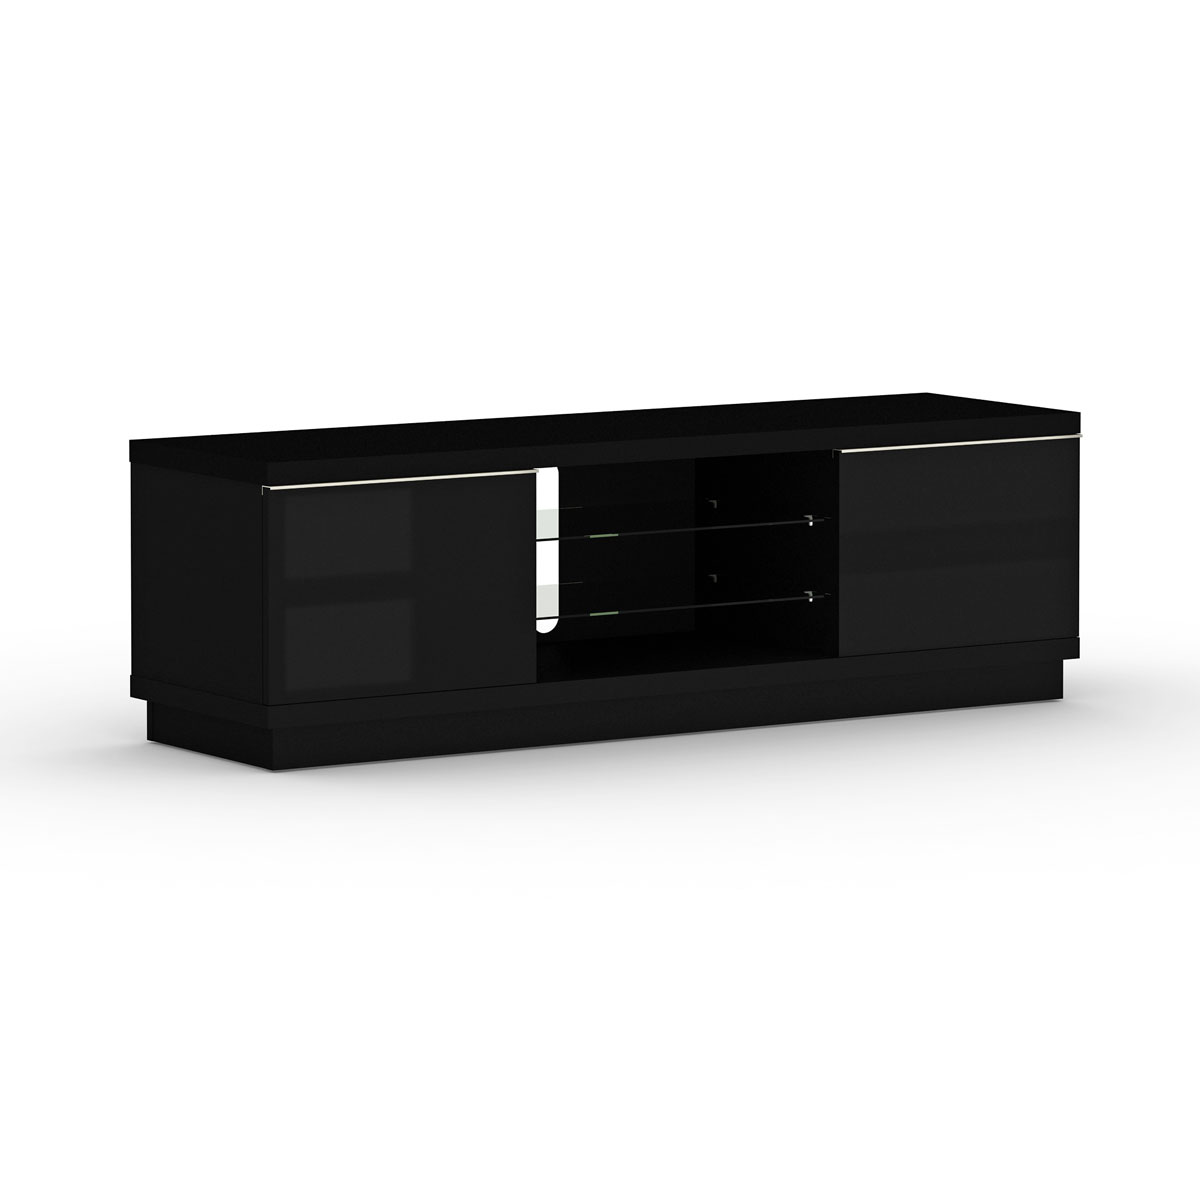 elmob harmony ha 160 01 noir meuble tv elmob sur ldlc. Black Bedroom Furniture Sets. Home Design Ideas